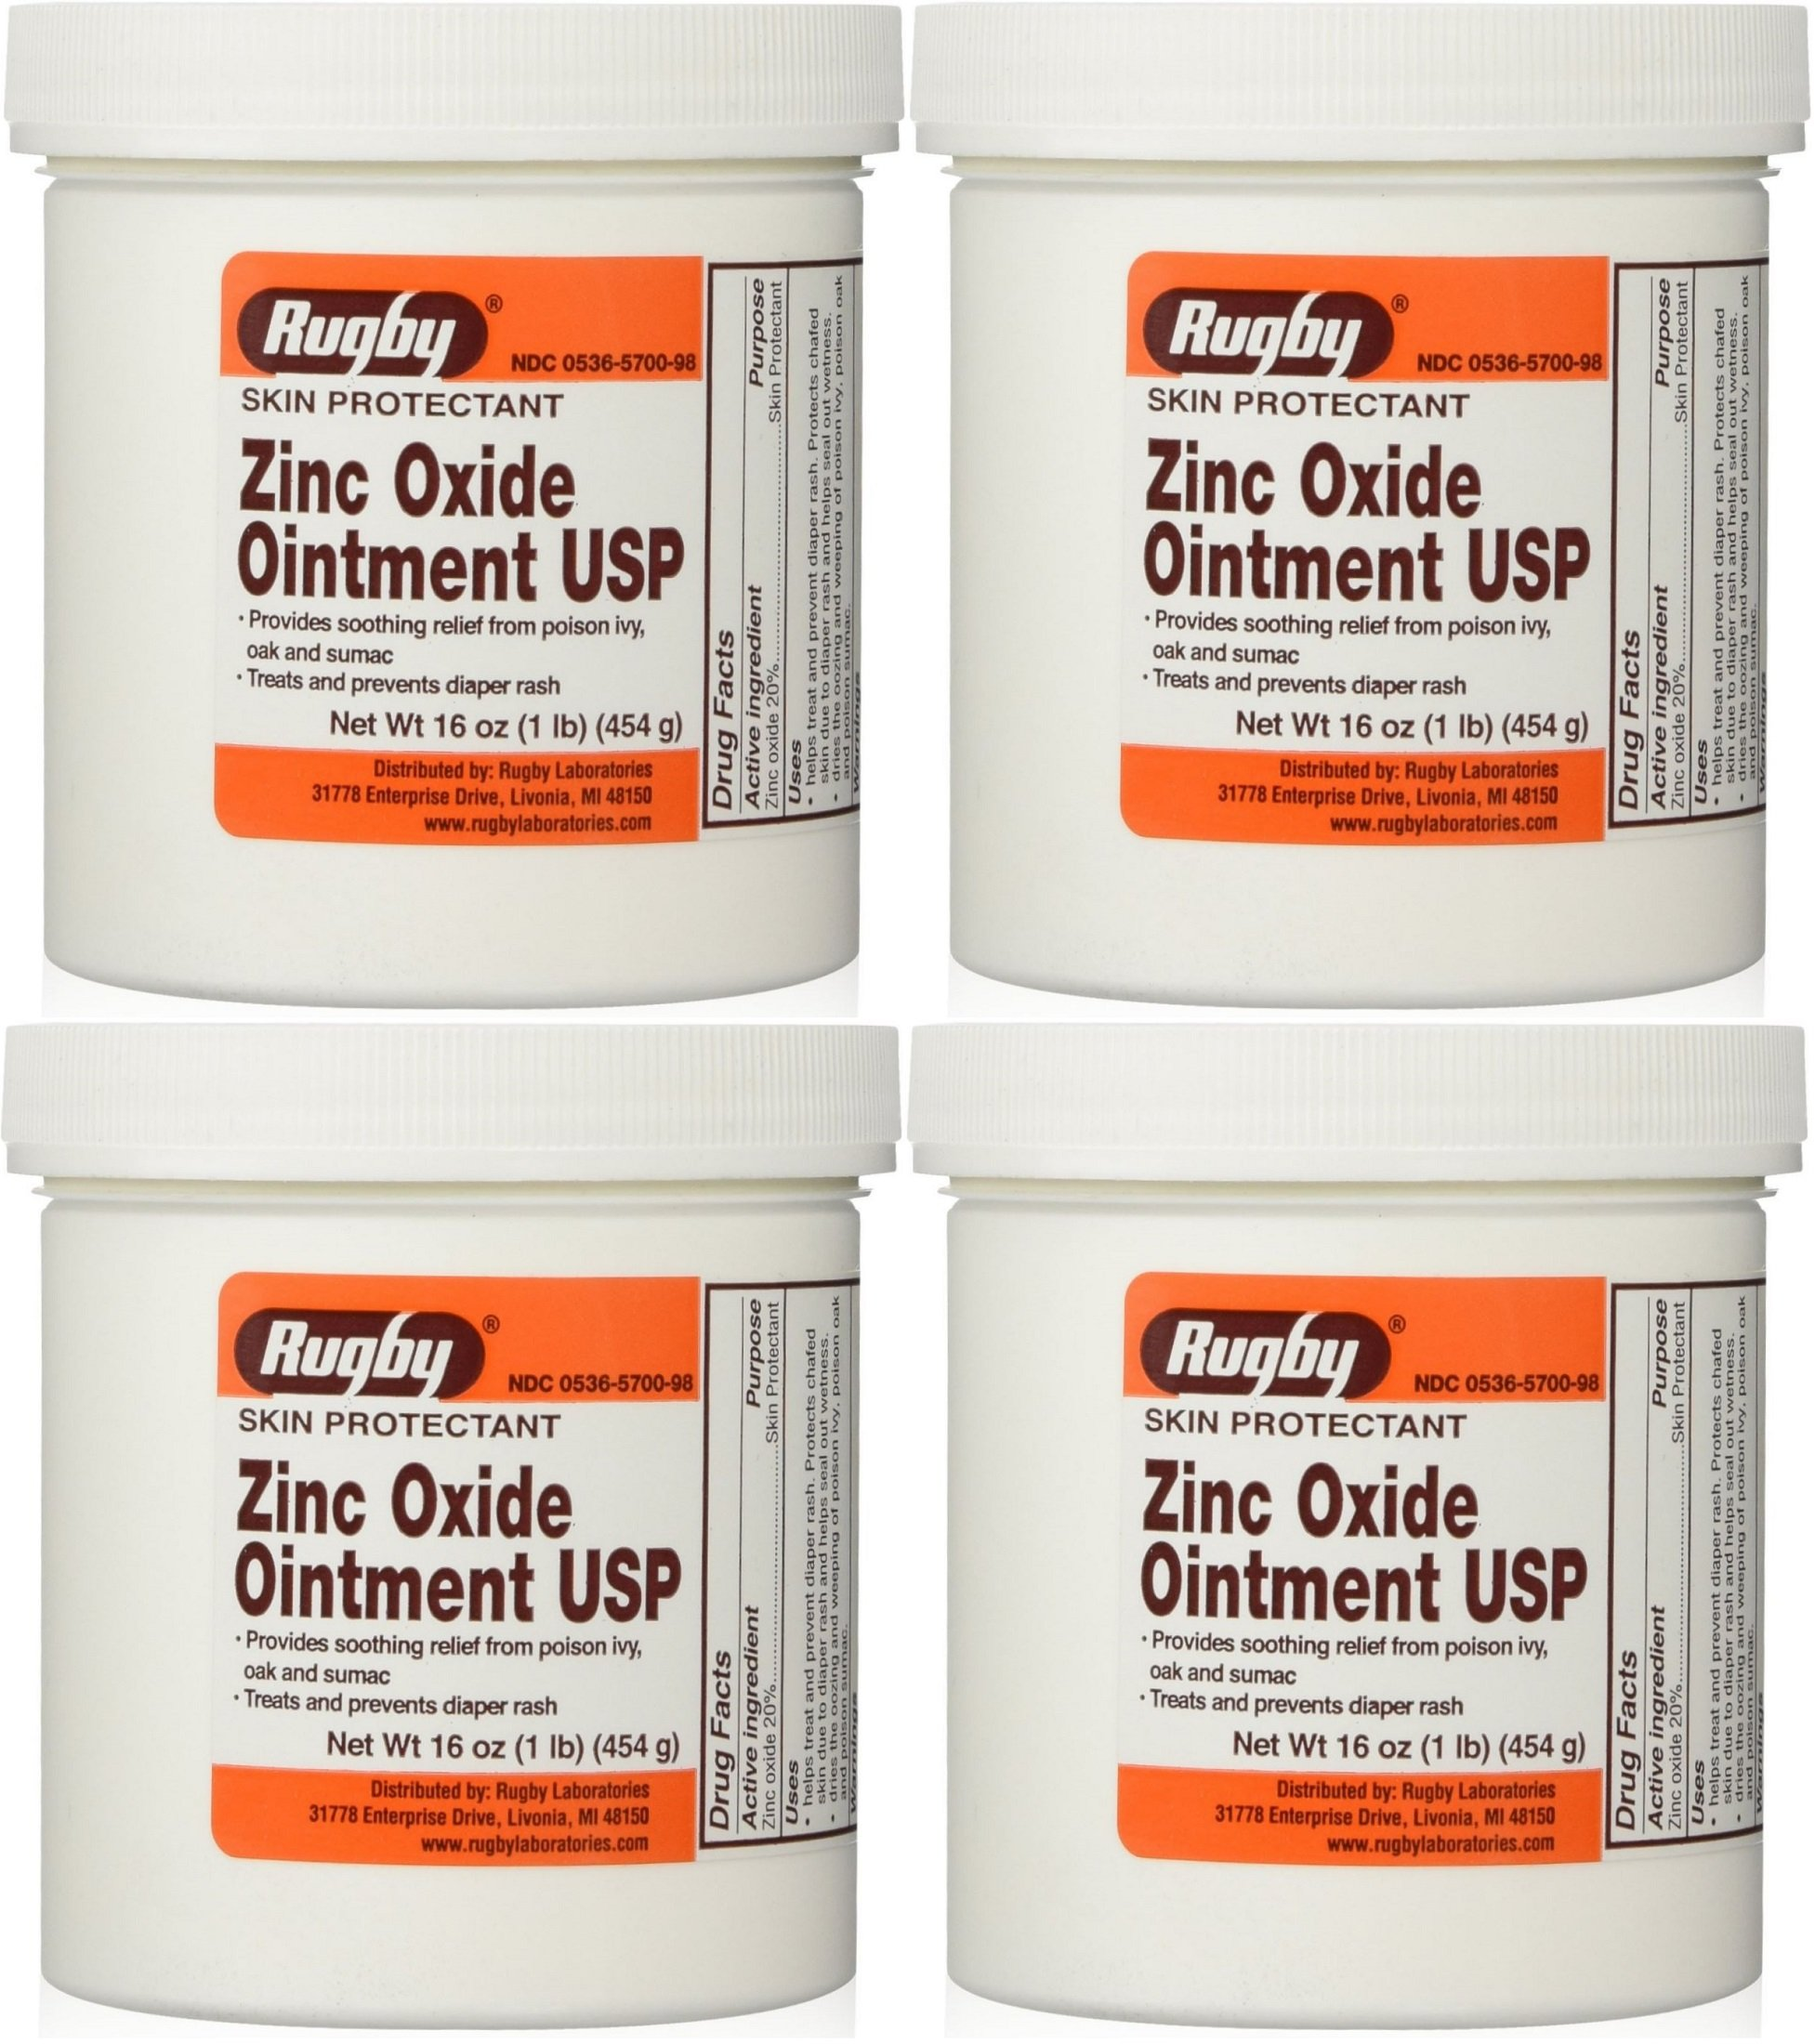 Zinc Oxide 20 % Skin Protectant Ointment for Diaper Rash, Chaffed Skin 1 Lb. Jar Pack of 4 Jars Total 4 Lb's (4) by Rugby